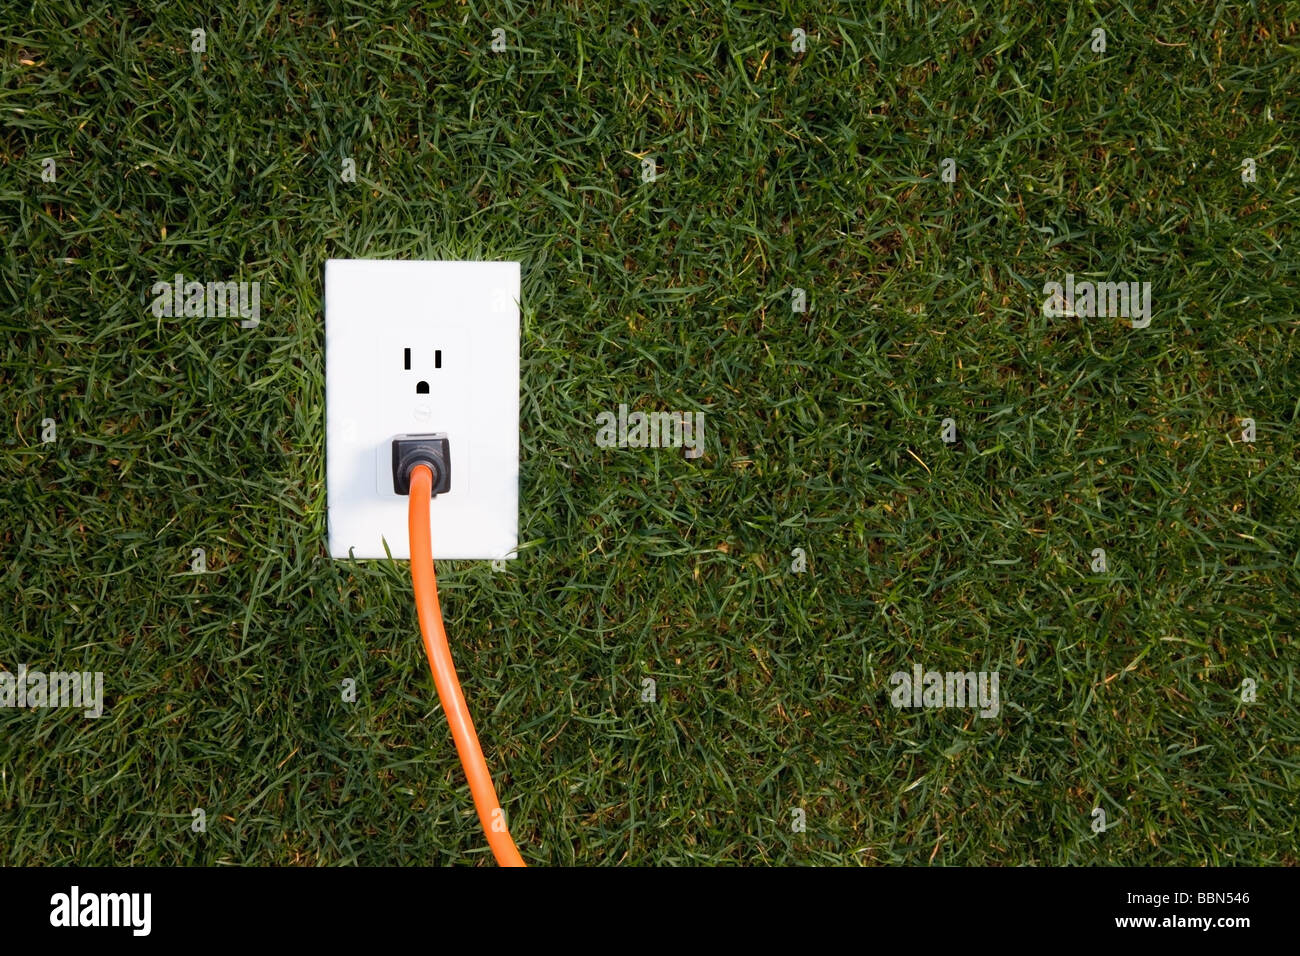 Electrical outlet in grass with extension cord plugged in - Stock Image